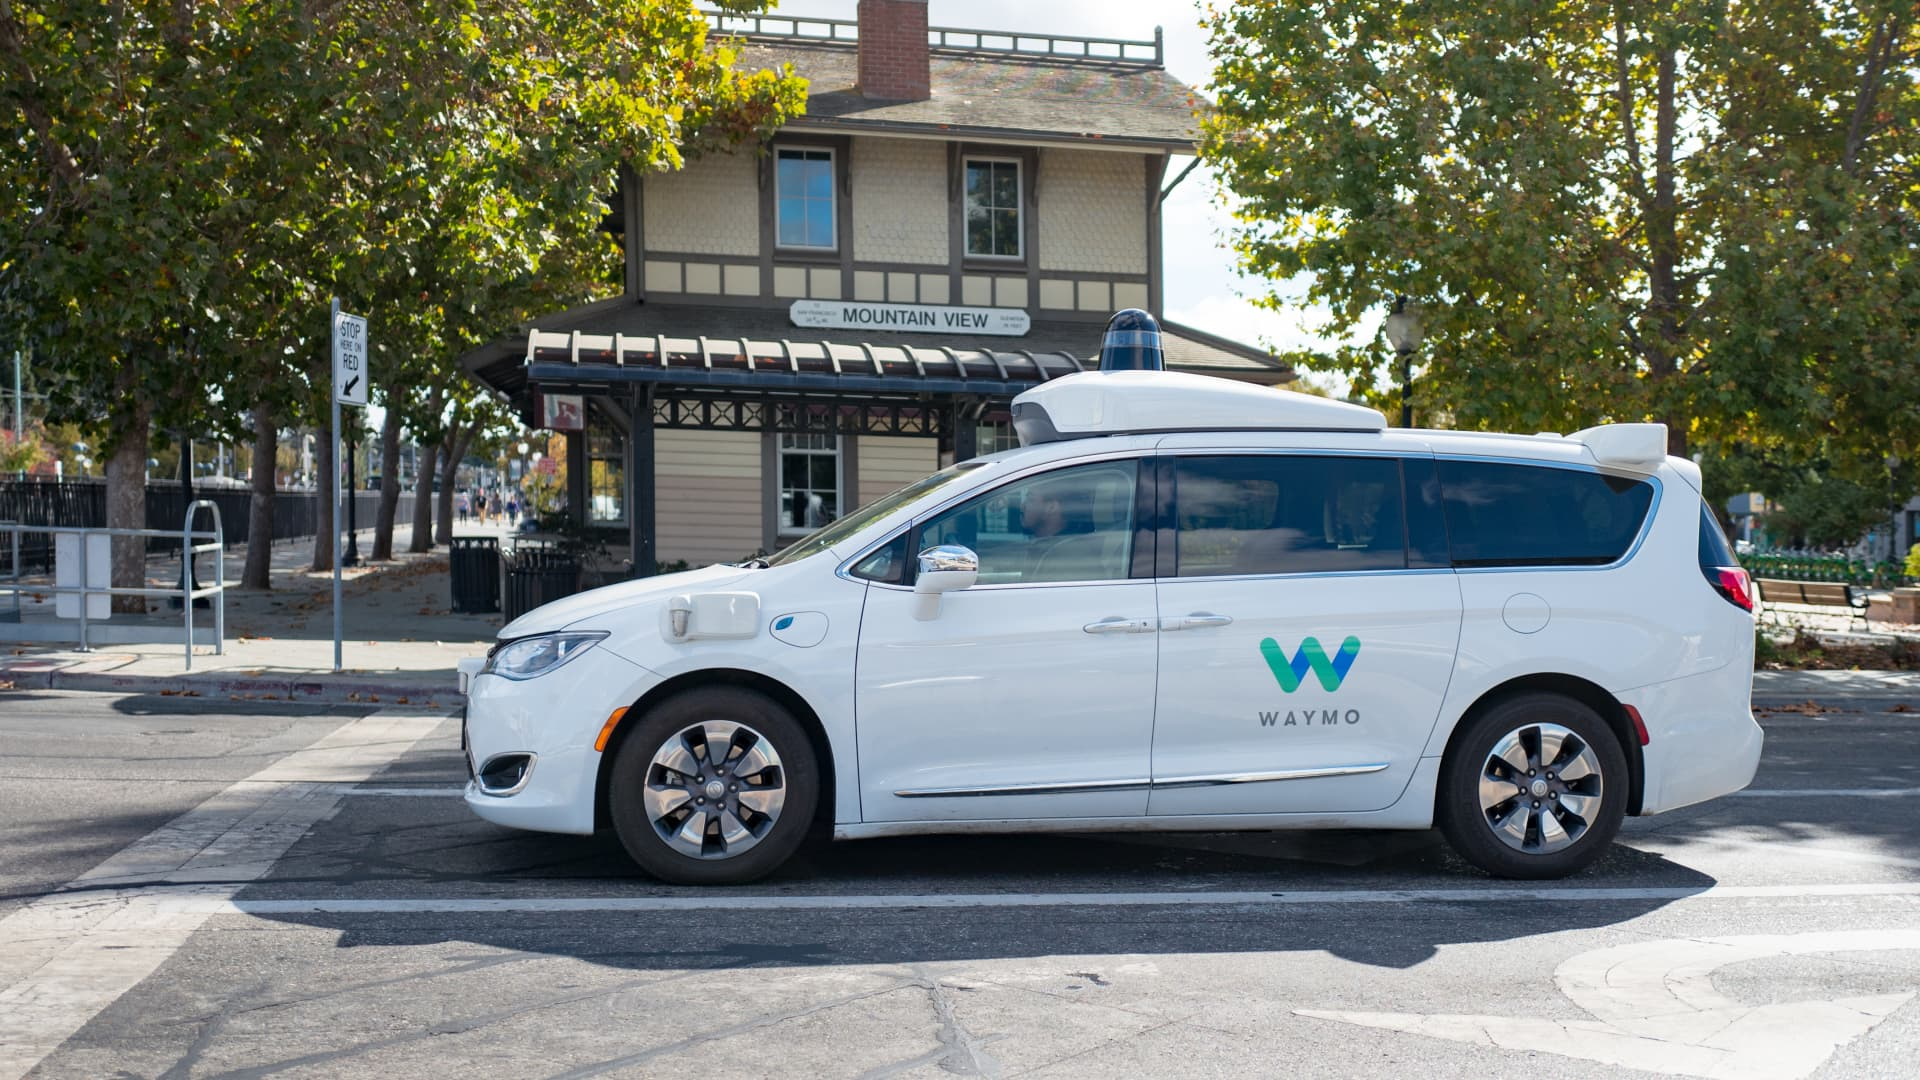 Close-up of self driving minivan, with LIDAR and other sensor units and logo visible, part of Google parent company Alphabet Inc, driving past historic railroad station with sign reading Mountain View, in the Silicon Valley town of Mountain View, California, with safety driver visible, October 28, 2018.